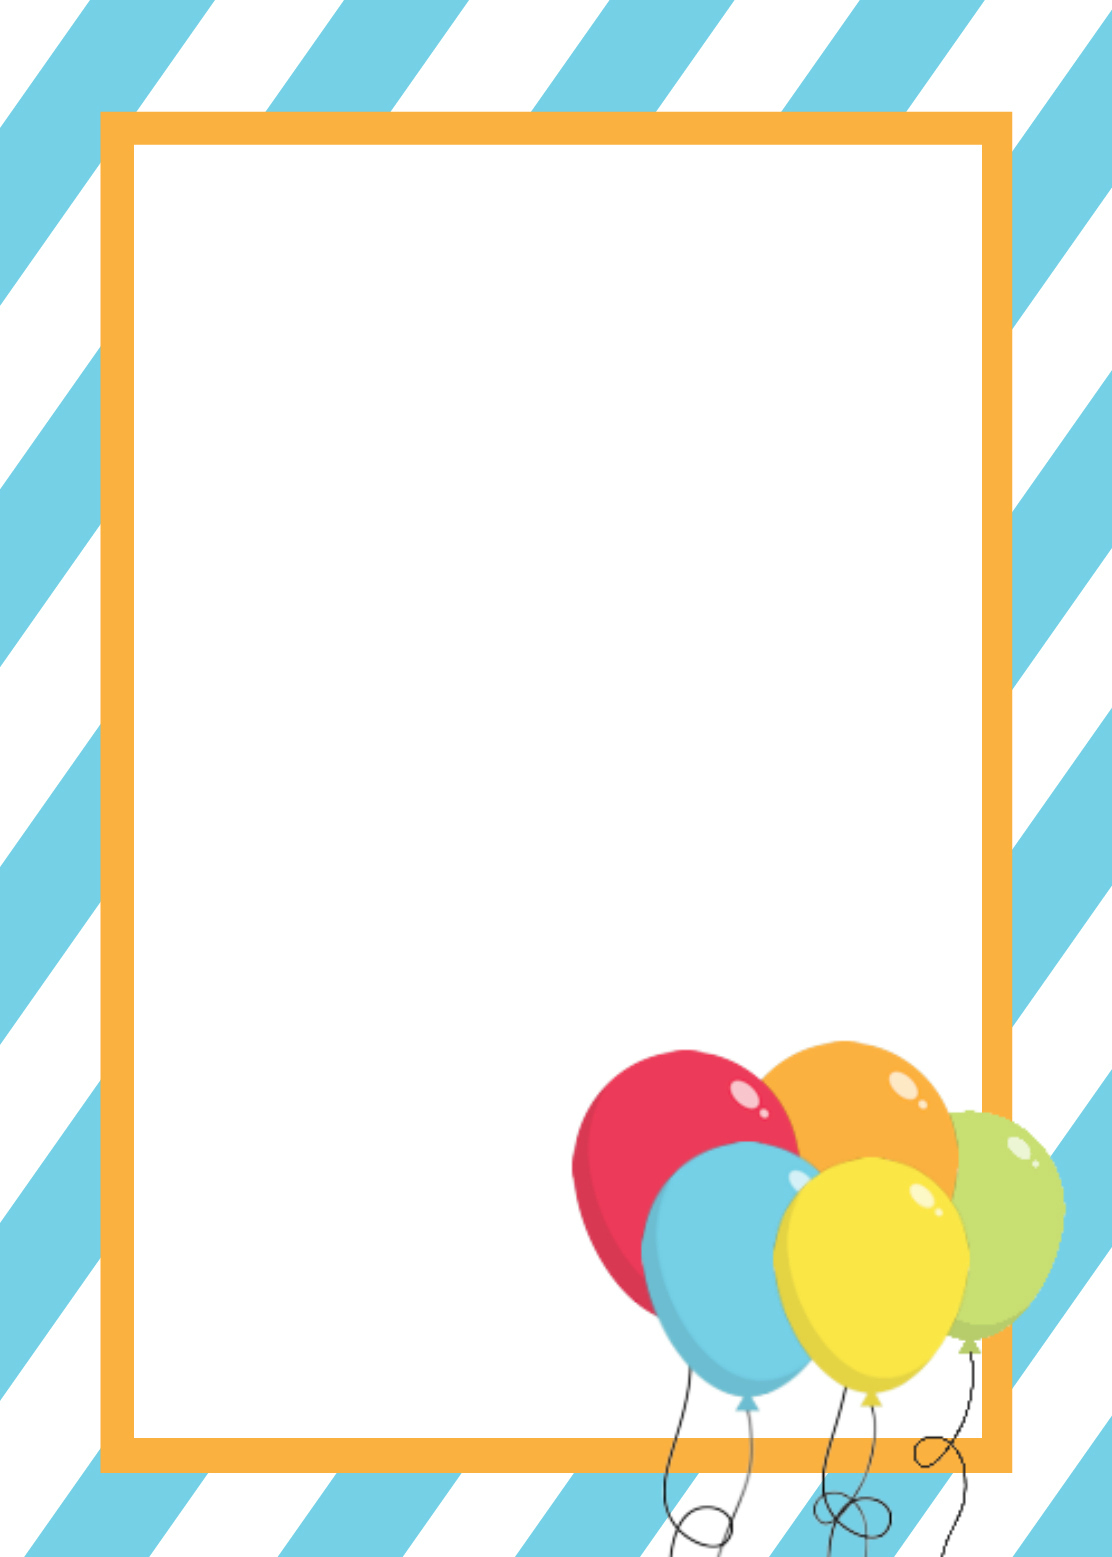 Free Printable Birthday Invitation Templates - Birthday invitation card format word